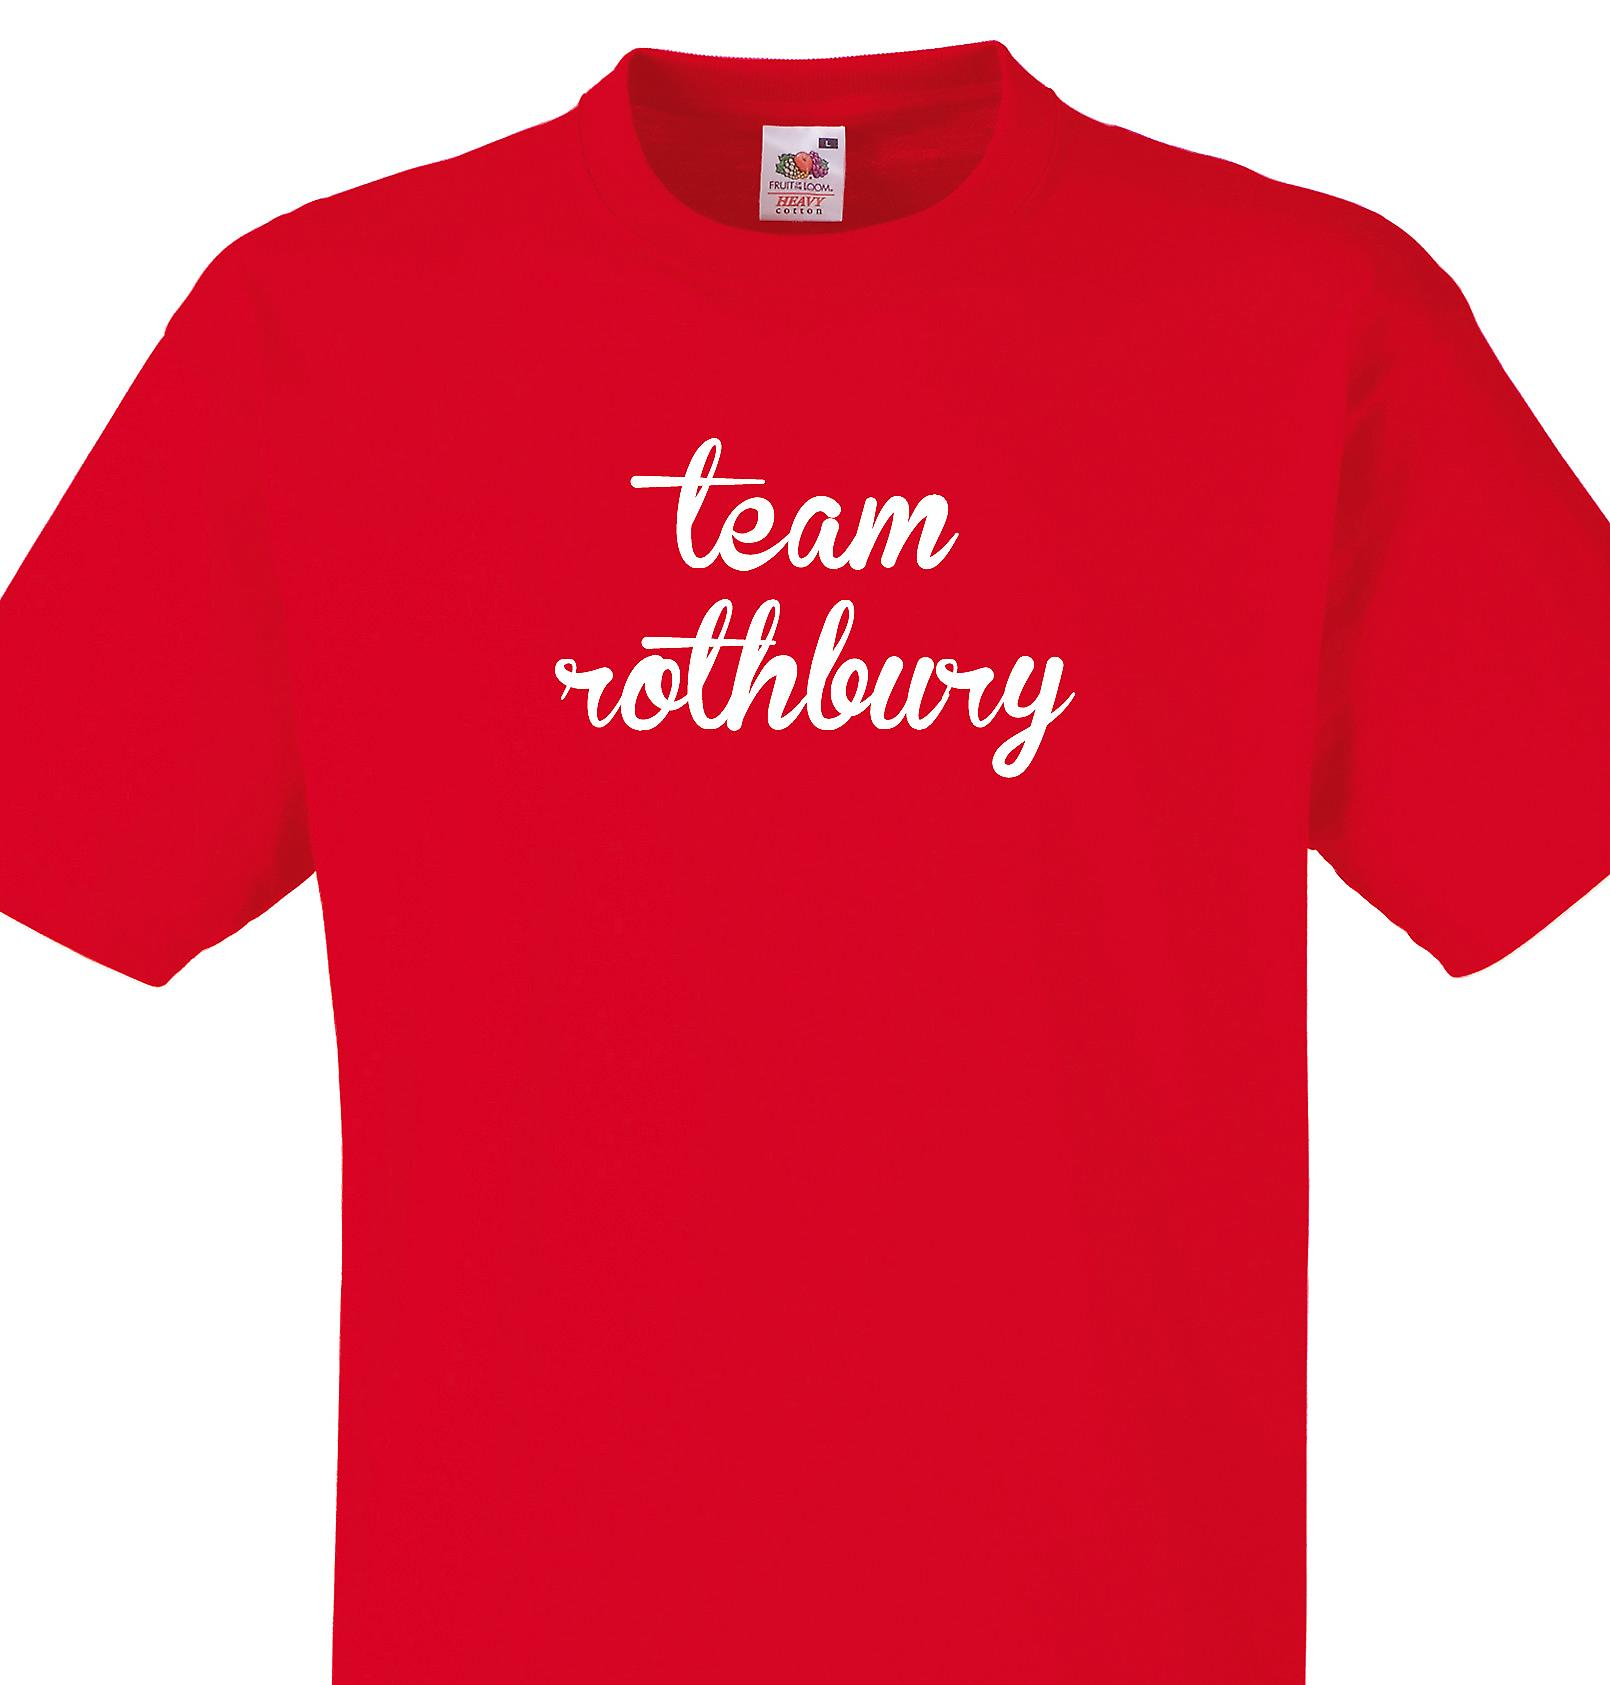 Team Rothbury Red T shirt